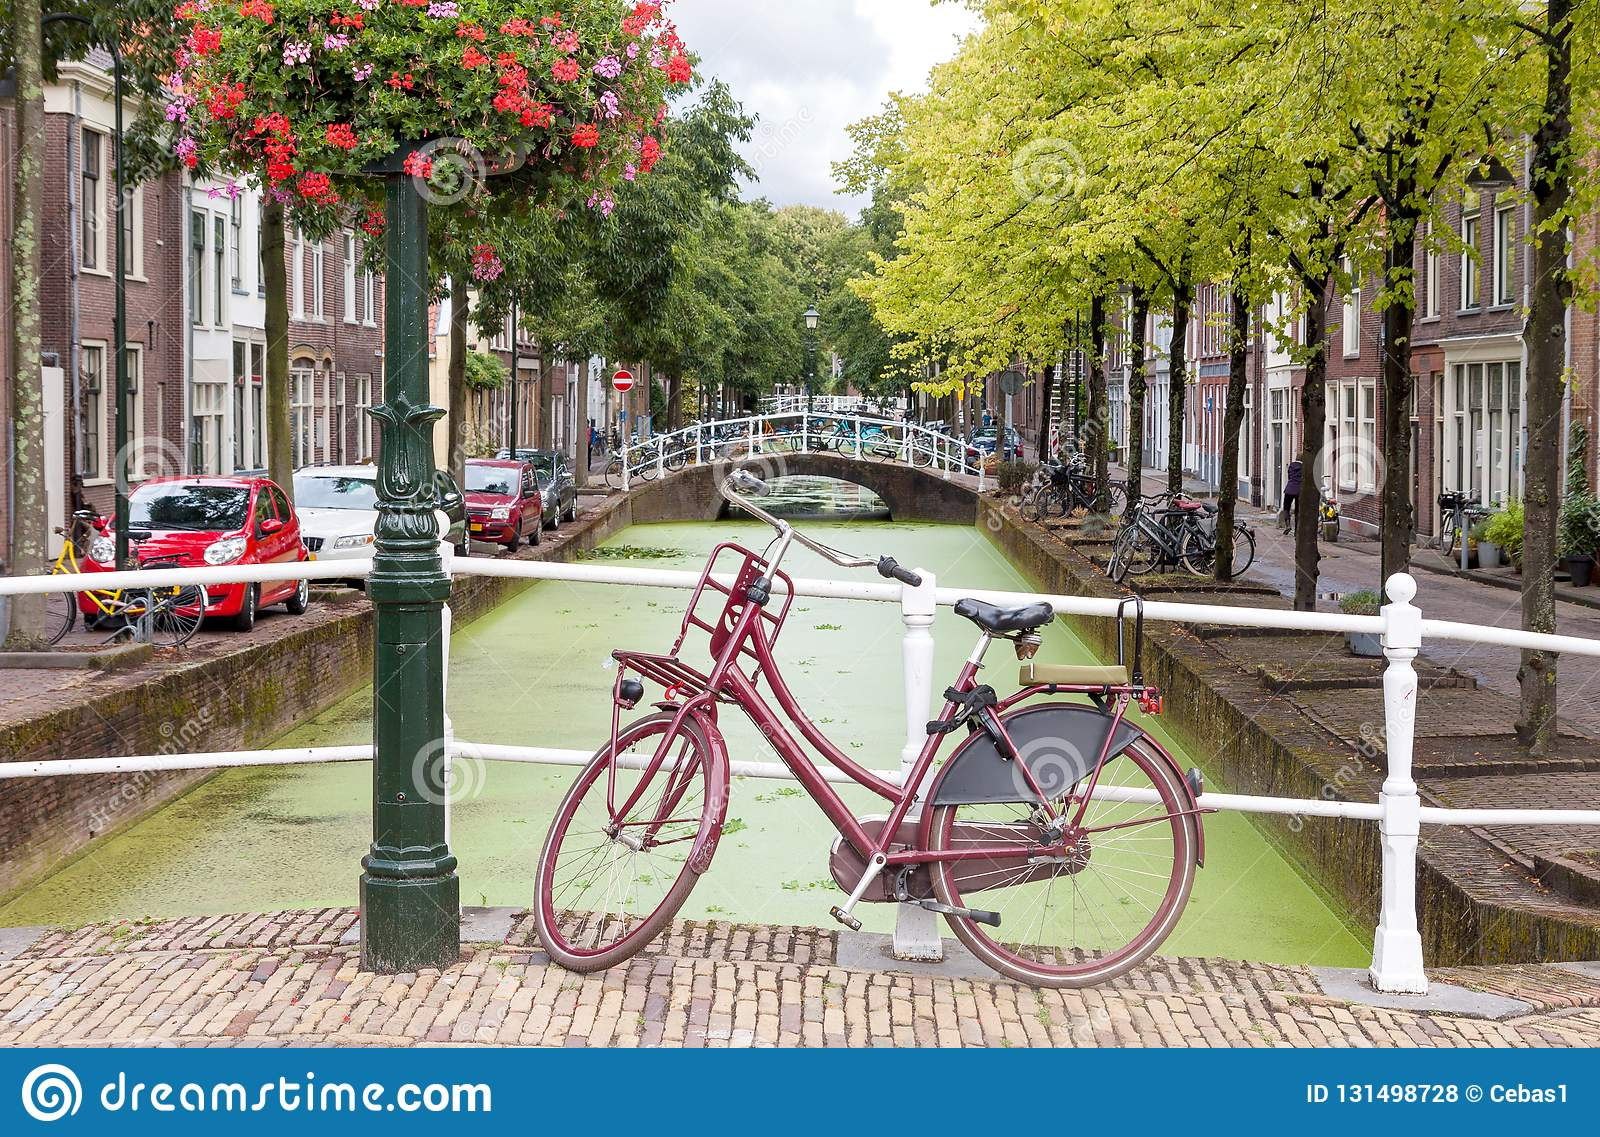 Delft city view in the Netherlands with water canal and vintage bicycle